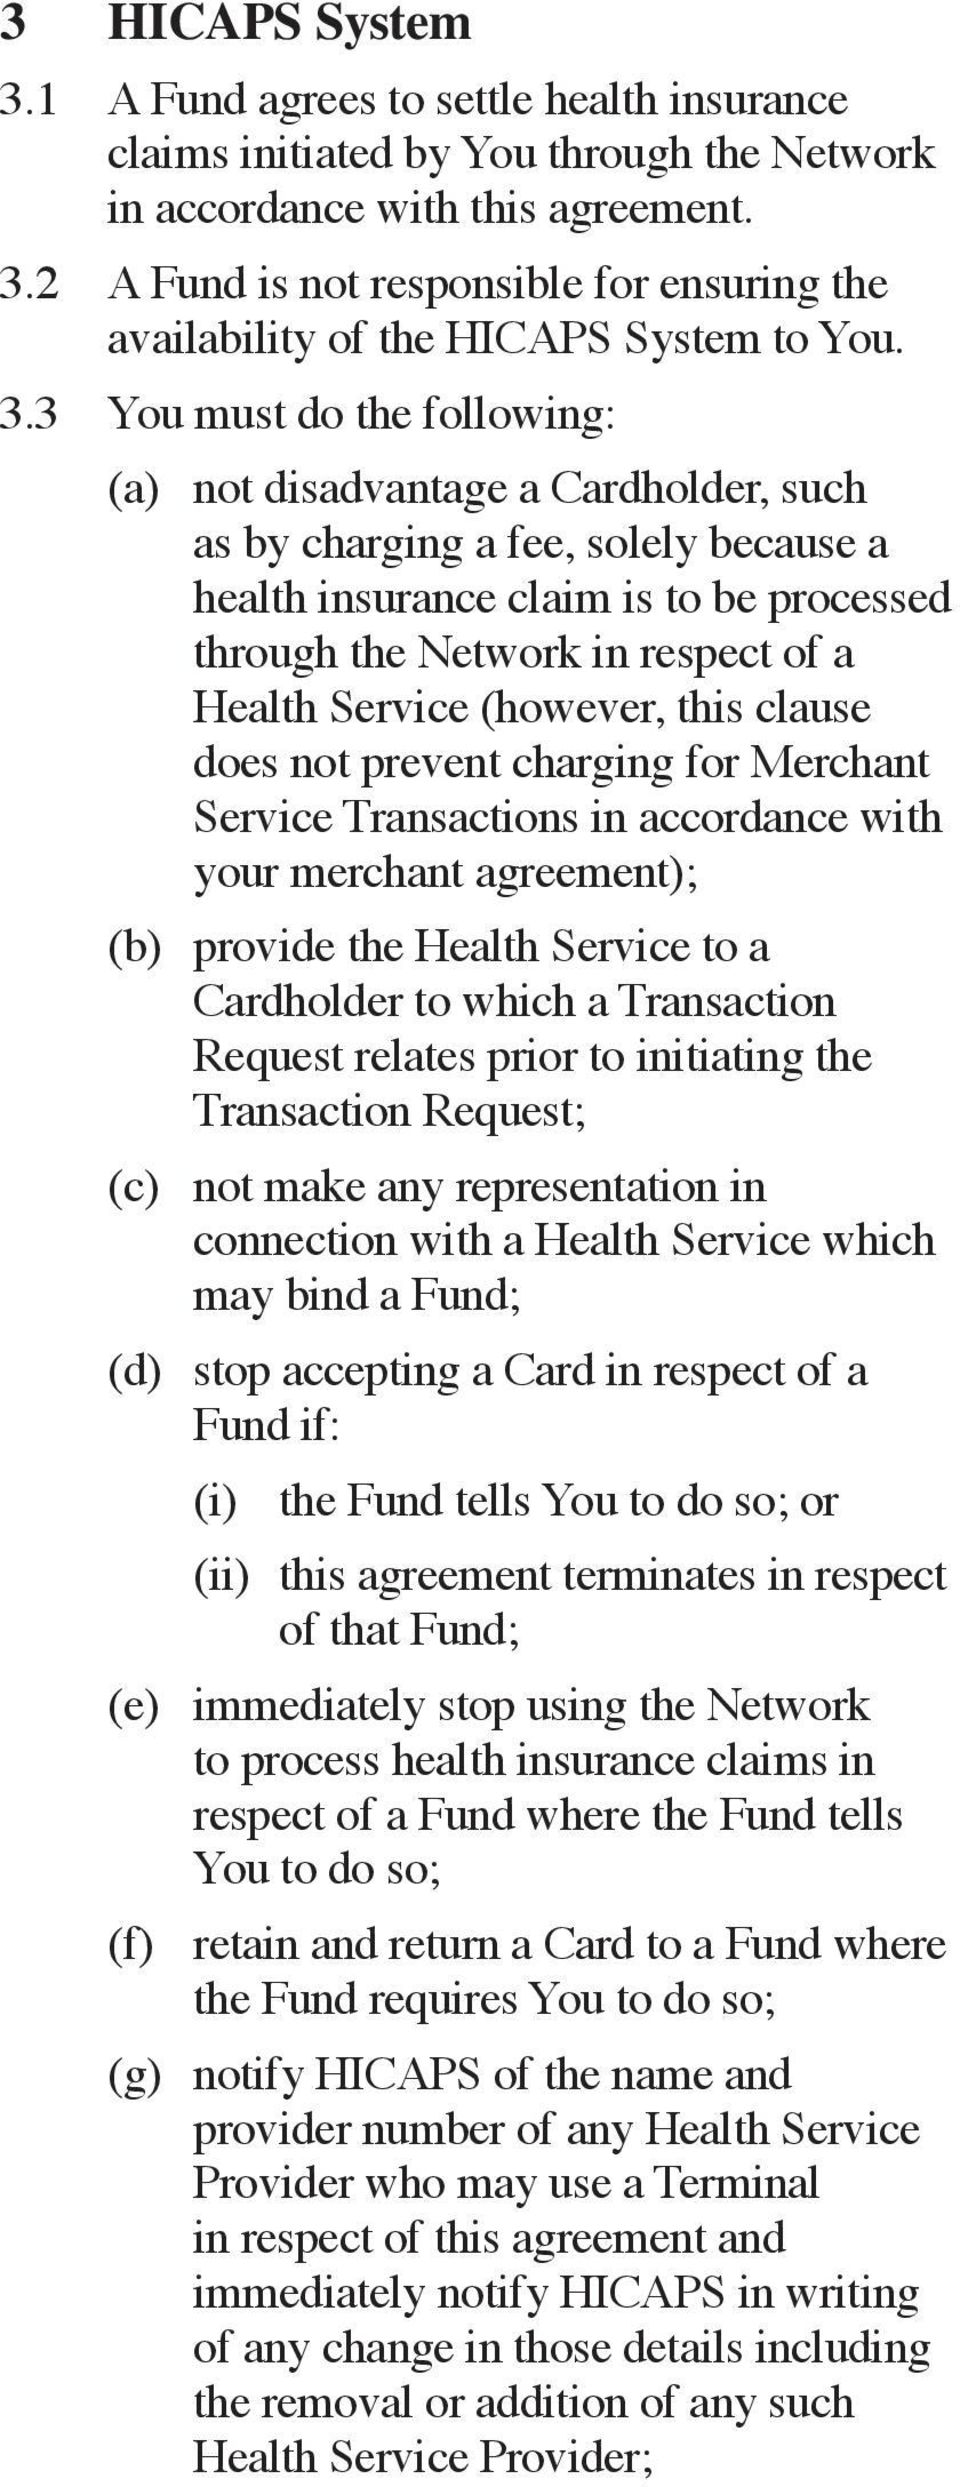 Service (however, this clause does not prevent charging for Merchant Service Transactions in accordance with your merchant agreement); (b) provide the Health Service to a Cardholder to which a